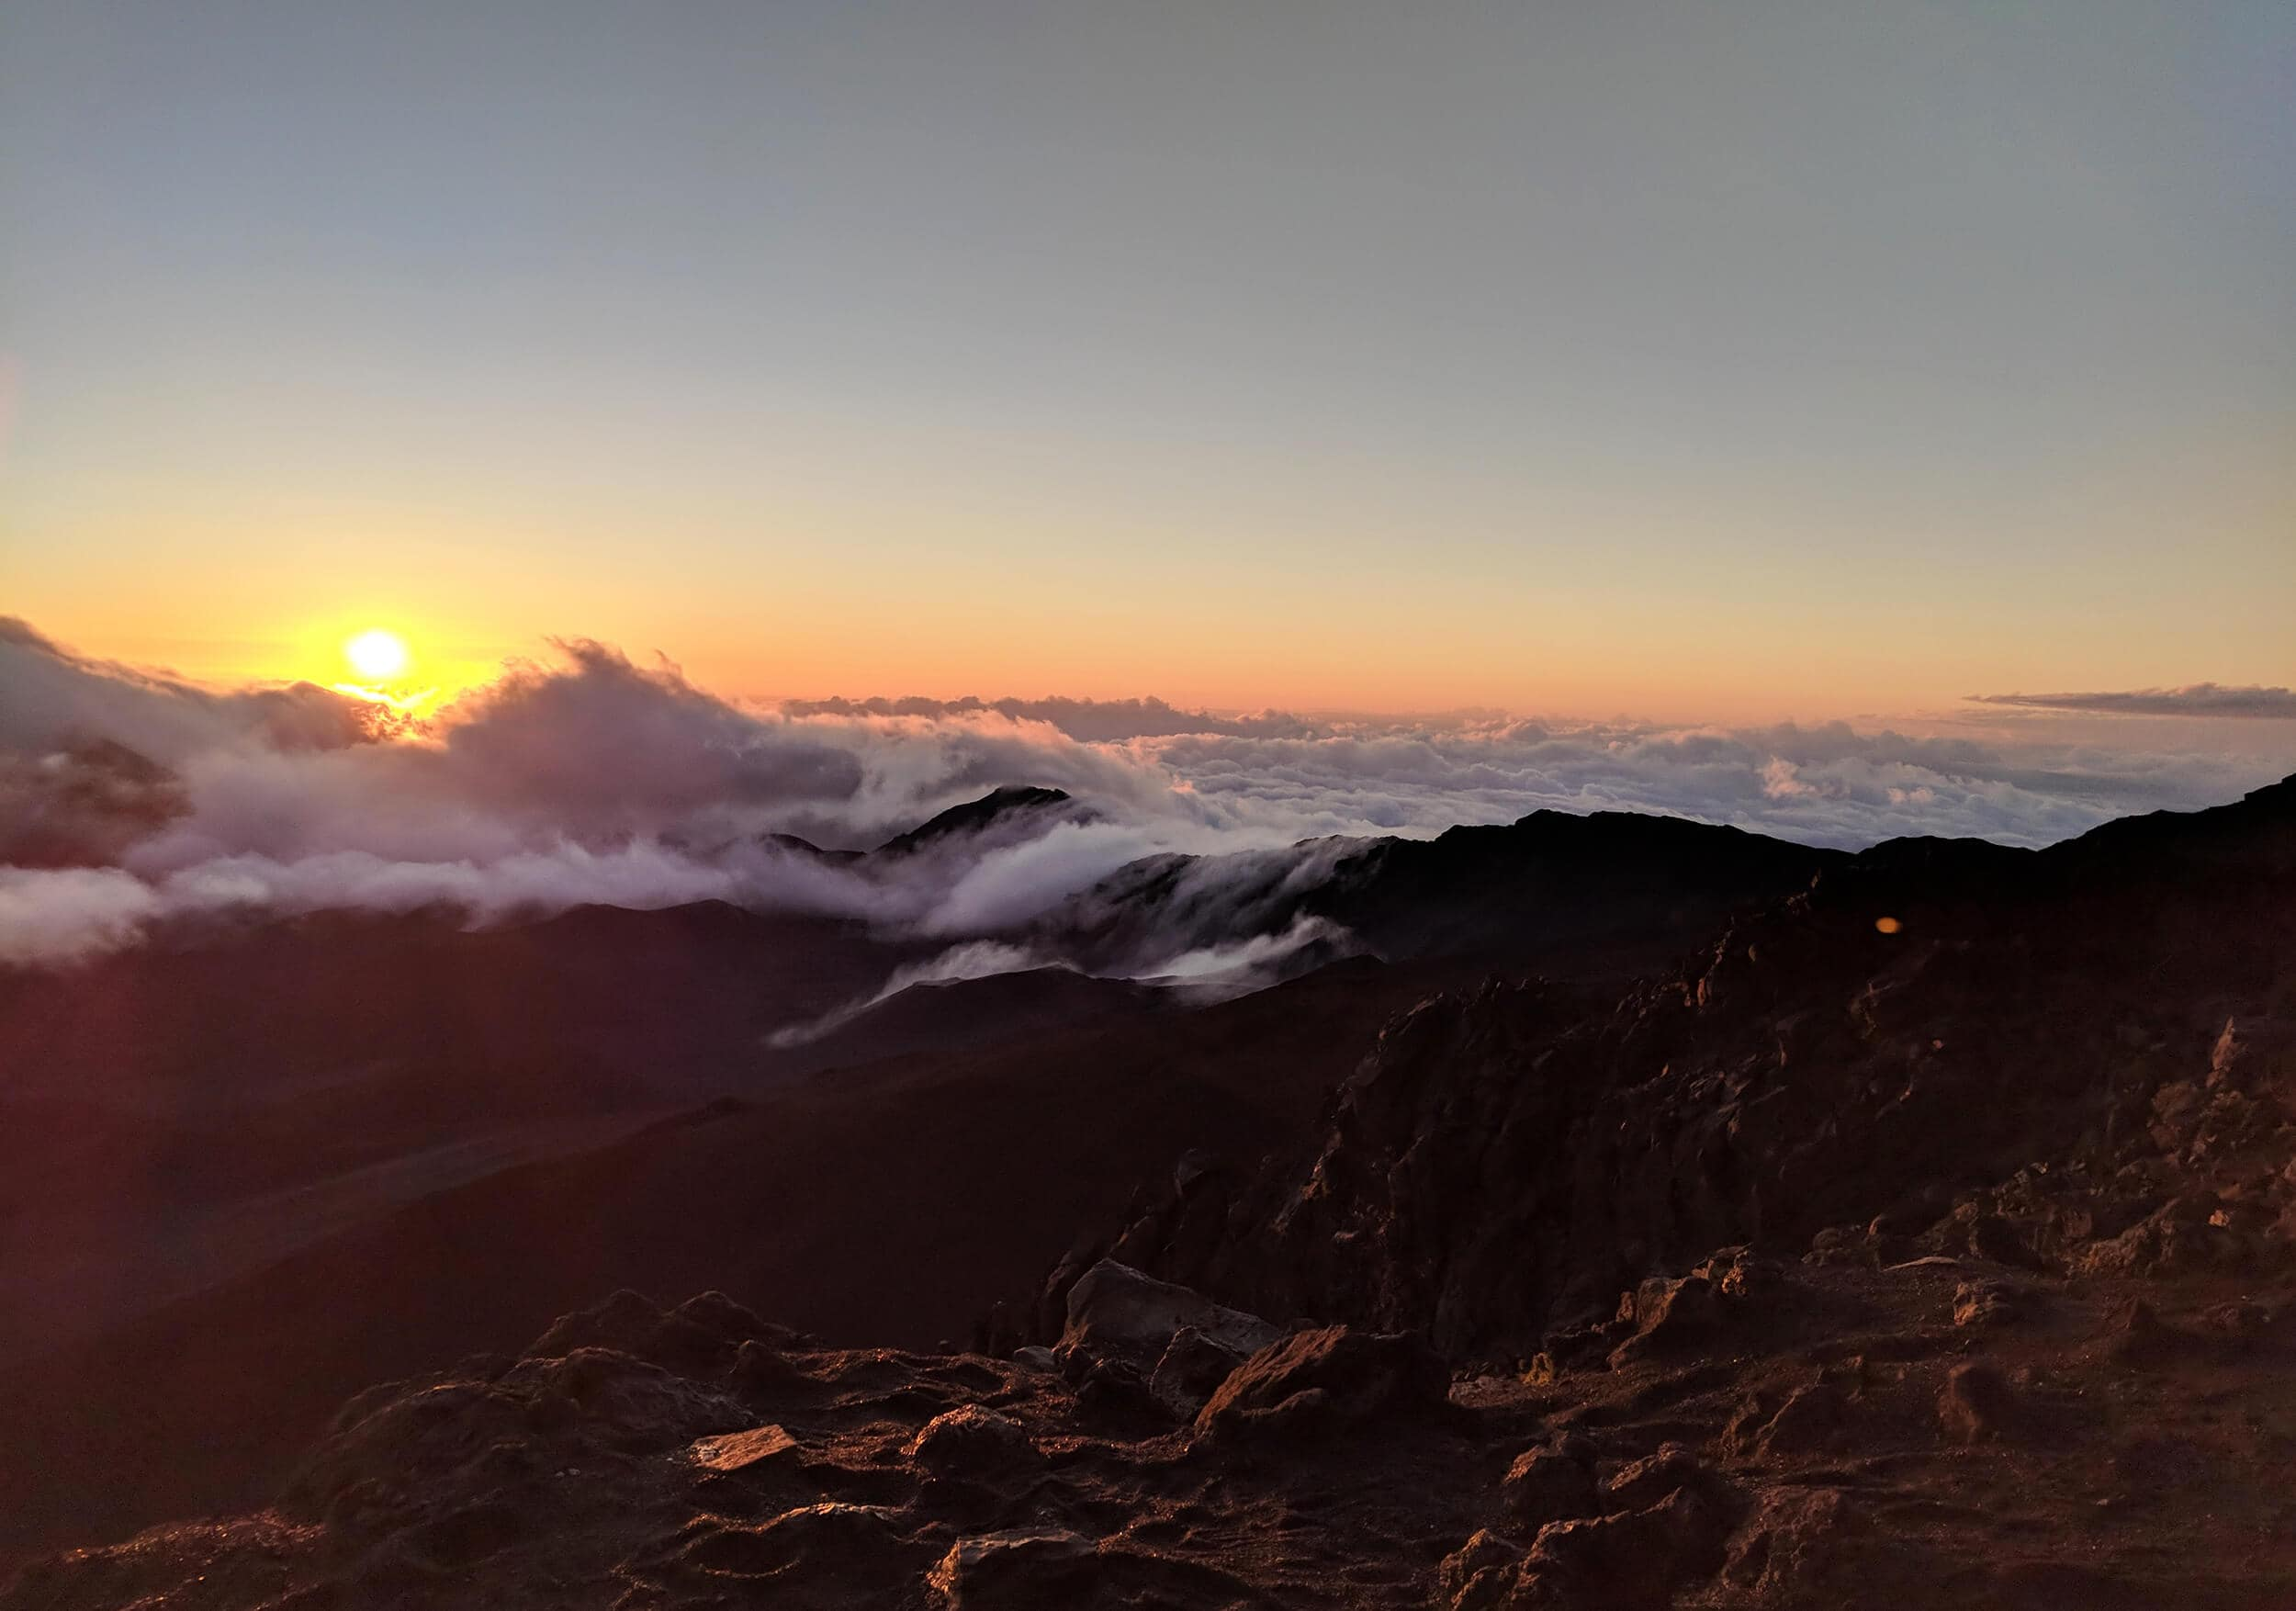 Travel bloggers reveal their most unforgettable travel experiences - Sunrise over Haleakala Volcano on Maui in Hawaii